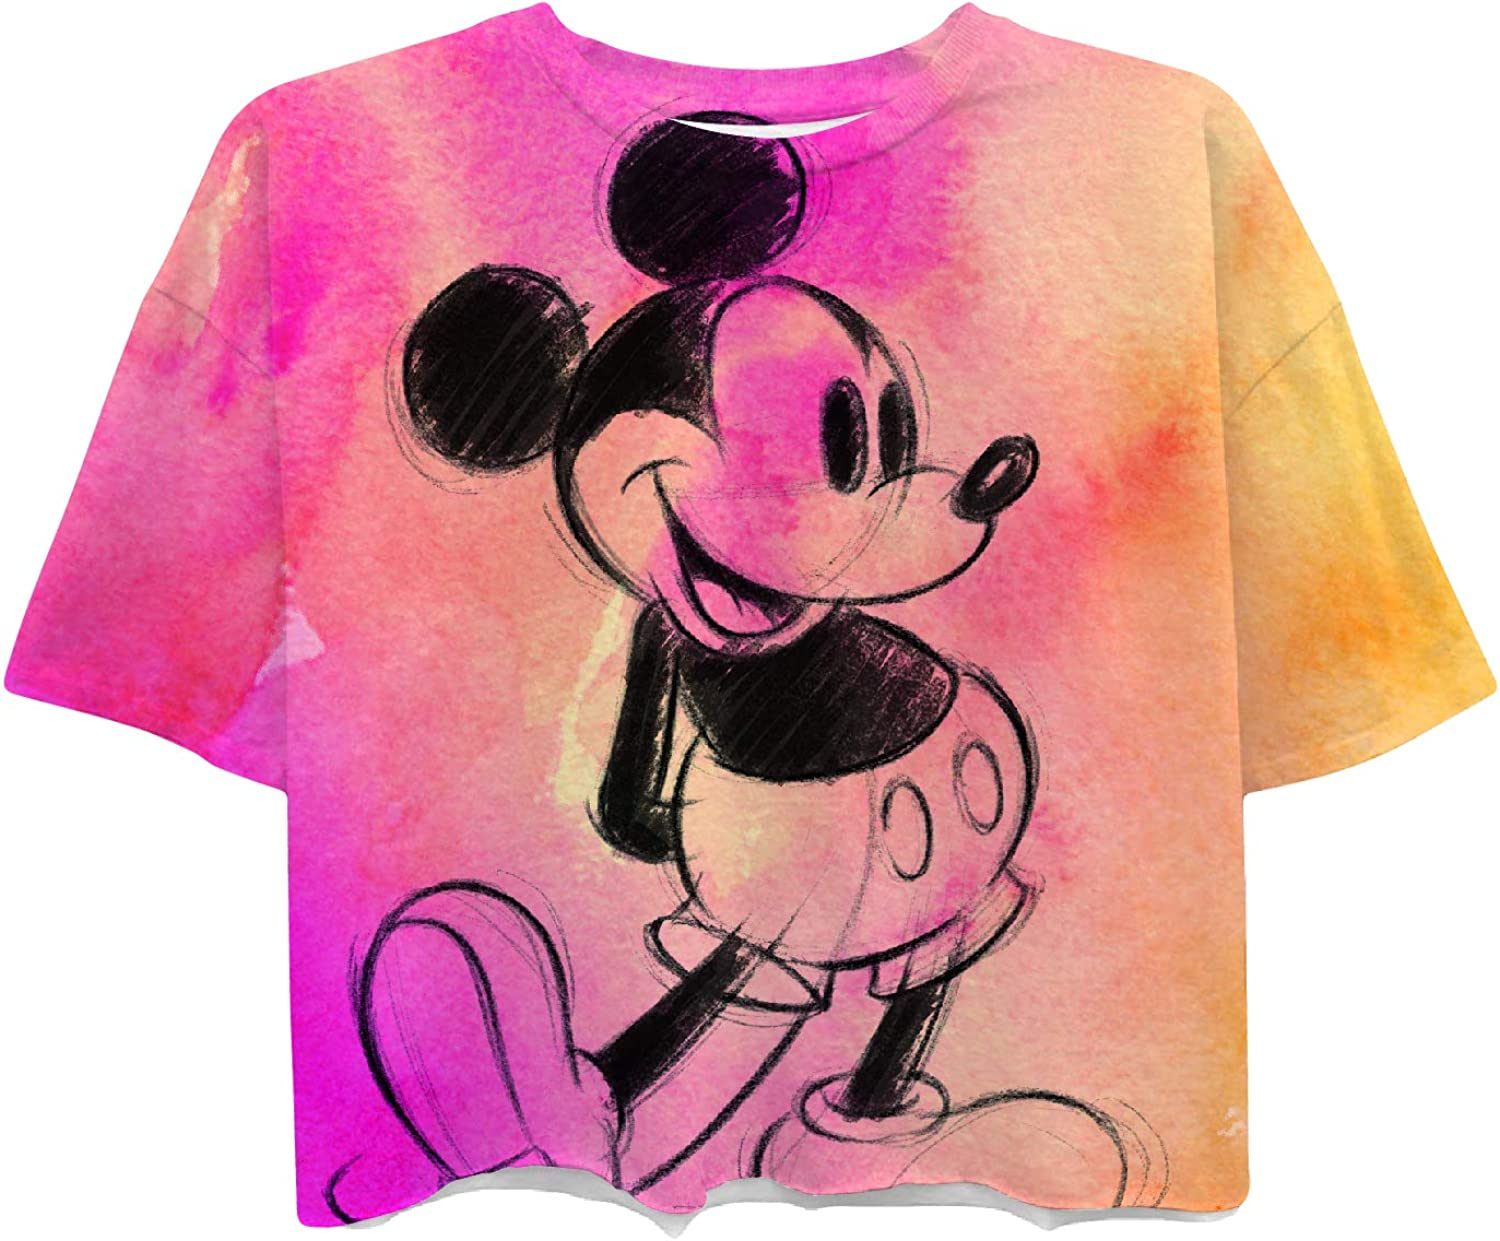 Ladies Classic Mickey Mouse Clothing Mickey Mouse Short Sleeve Tee Disney Ladies Mickey Mouse Fashion Shirt